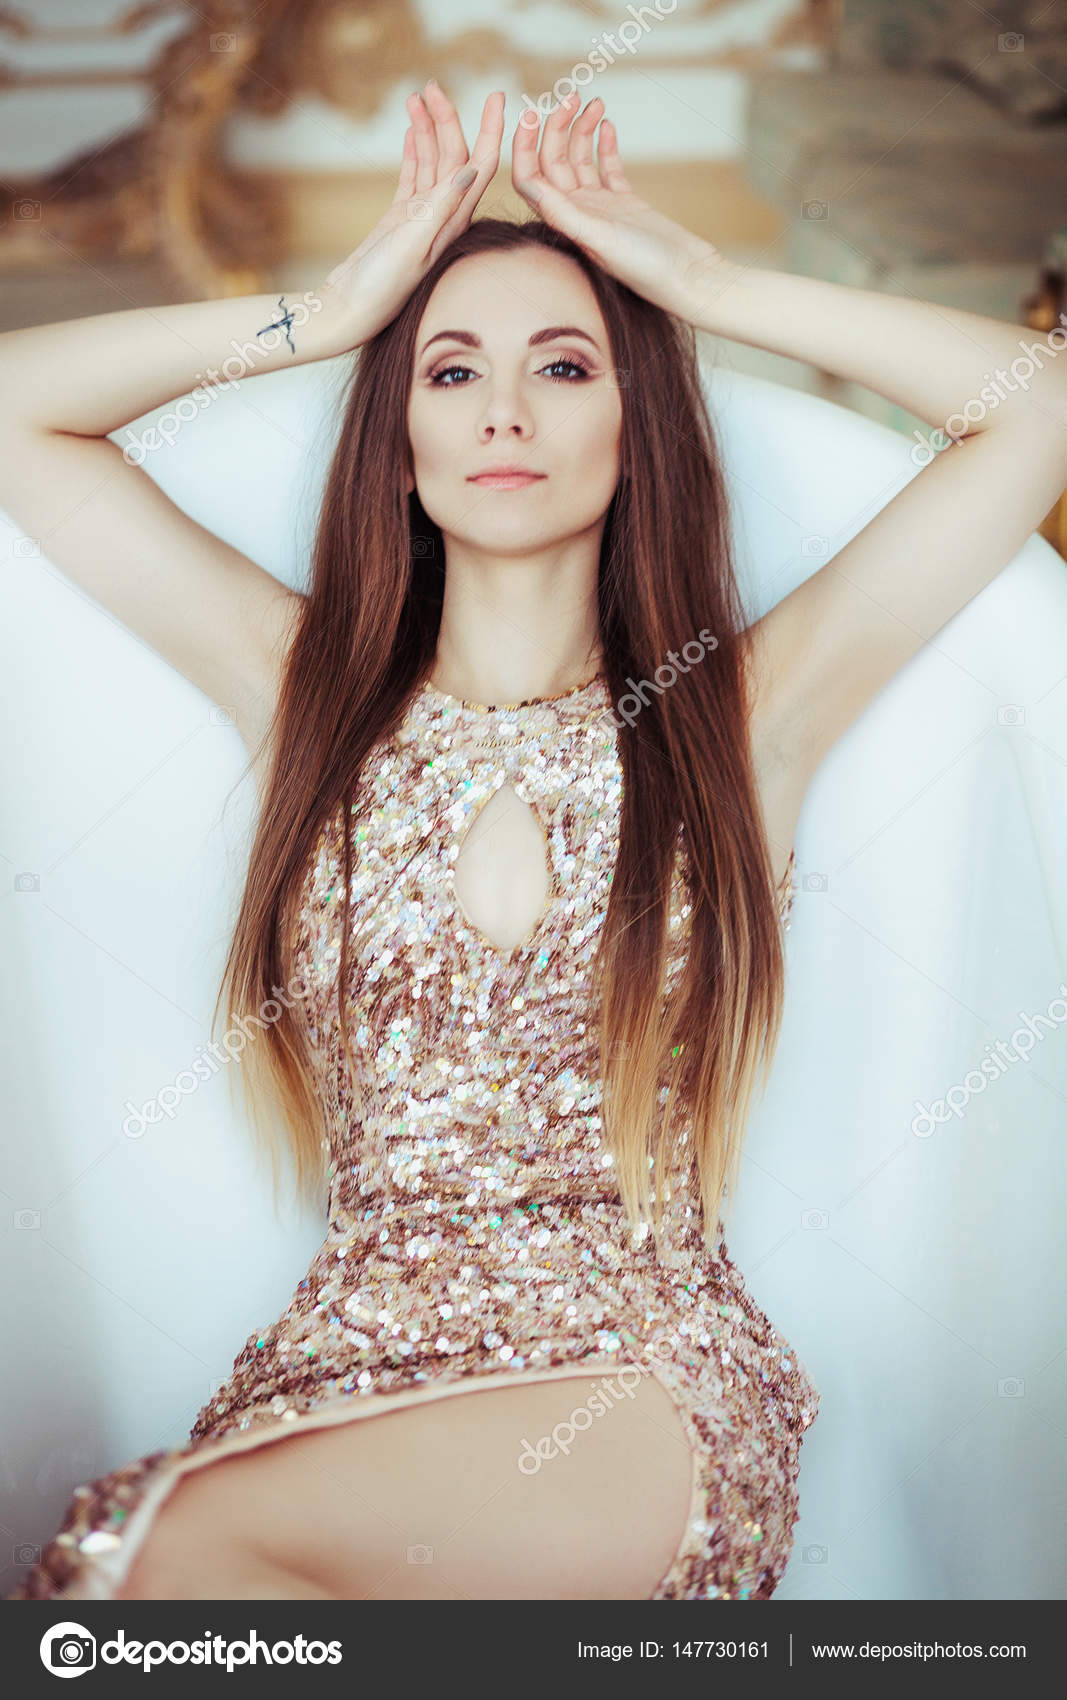 5a92524834 Beautiful stunning young woman in amazing glitter sequins dress lies in a  white bath. Bright full lips